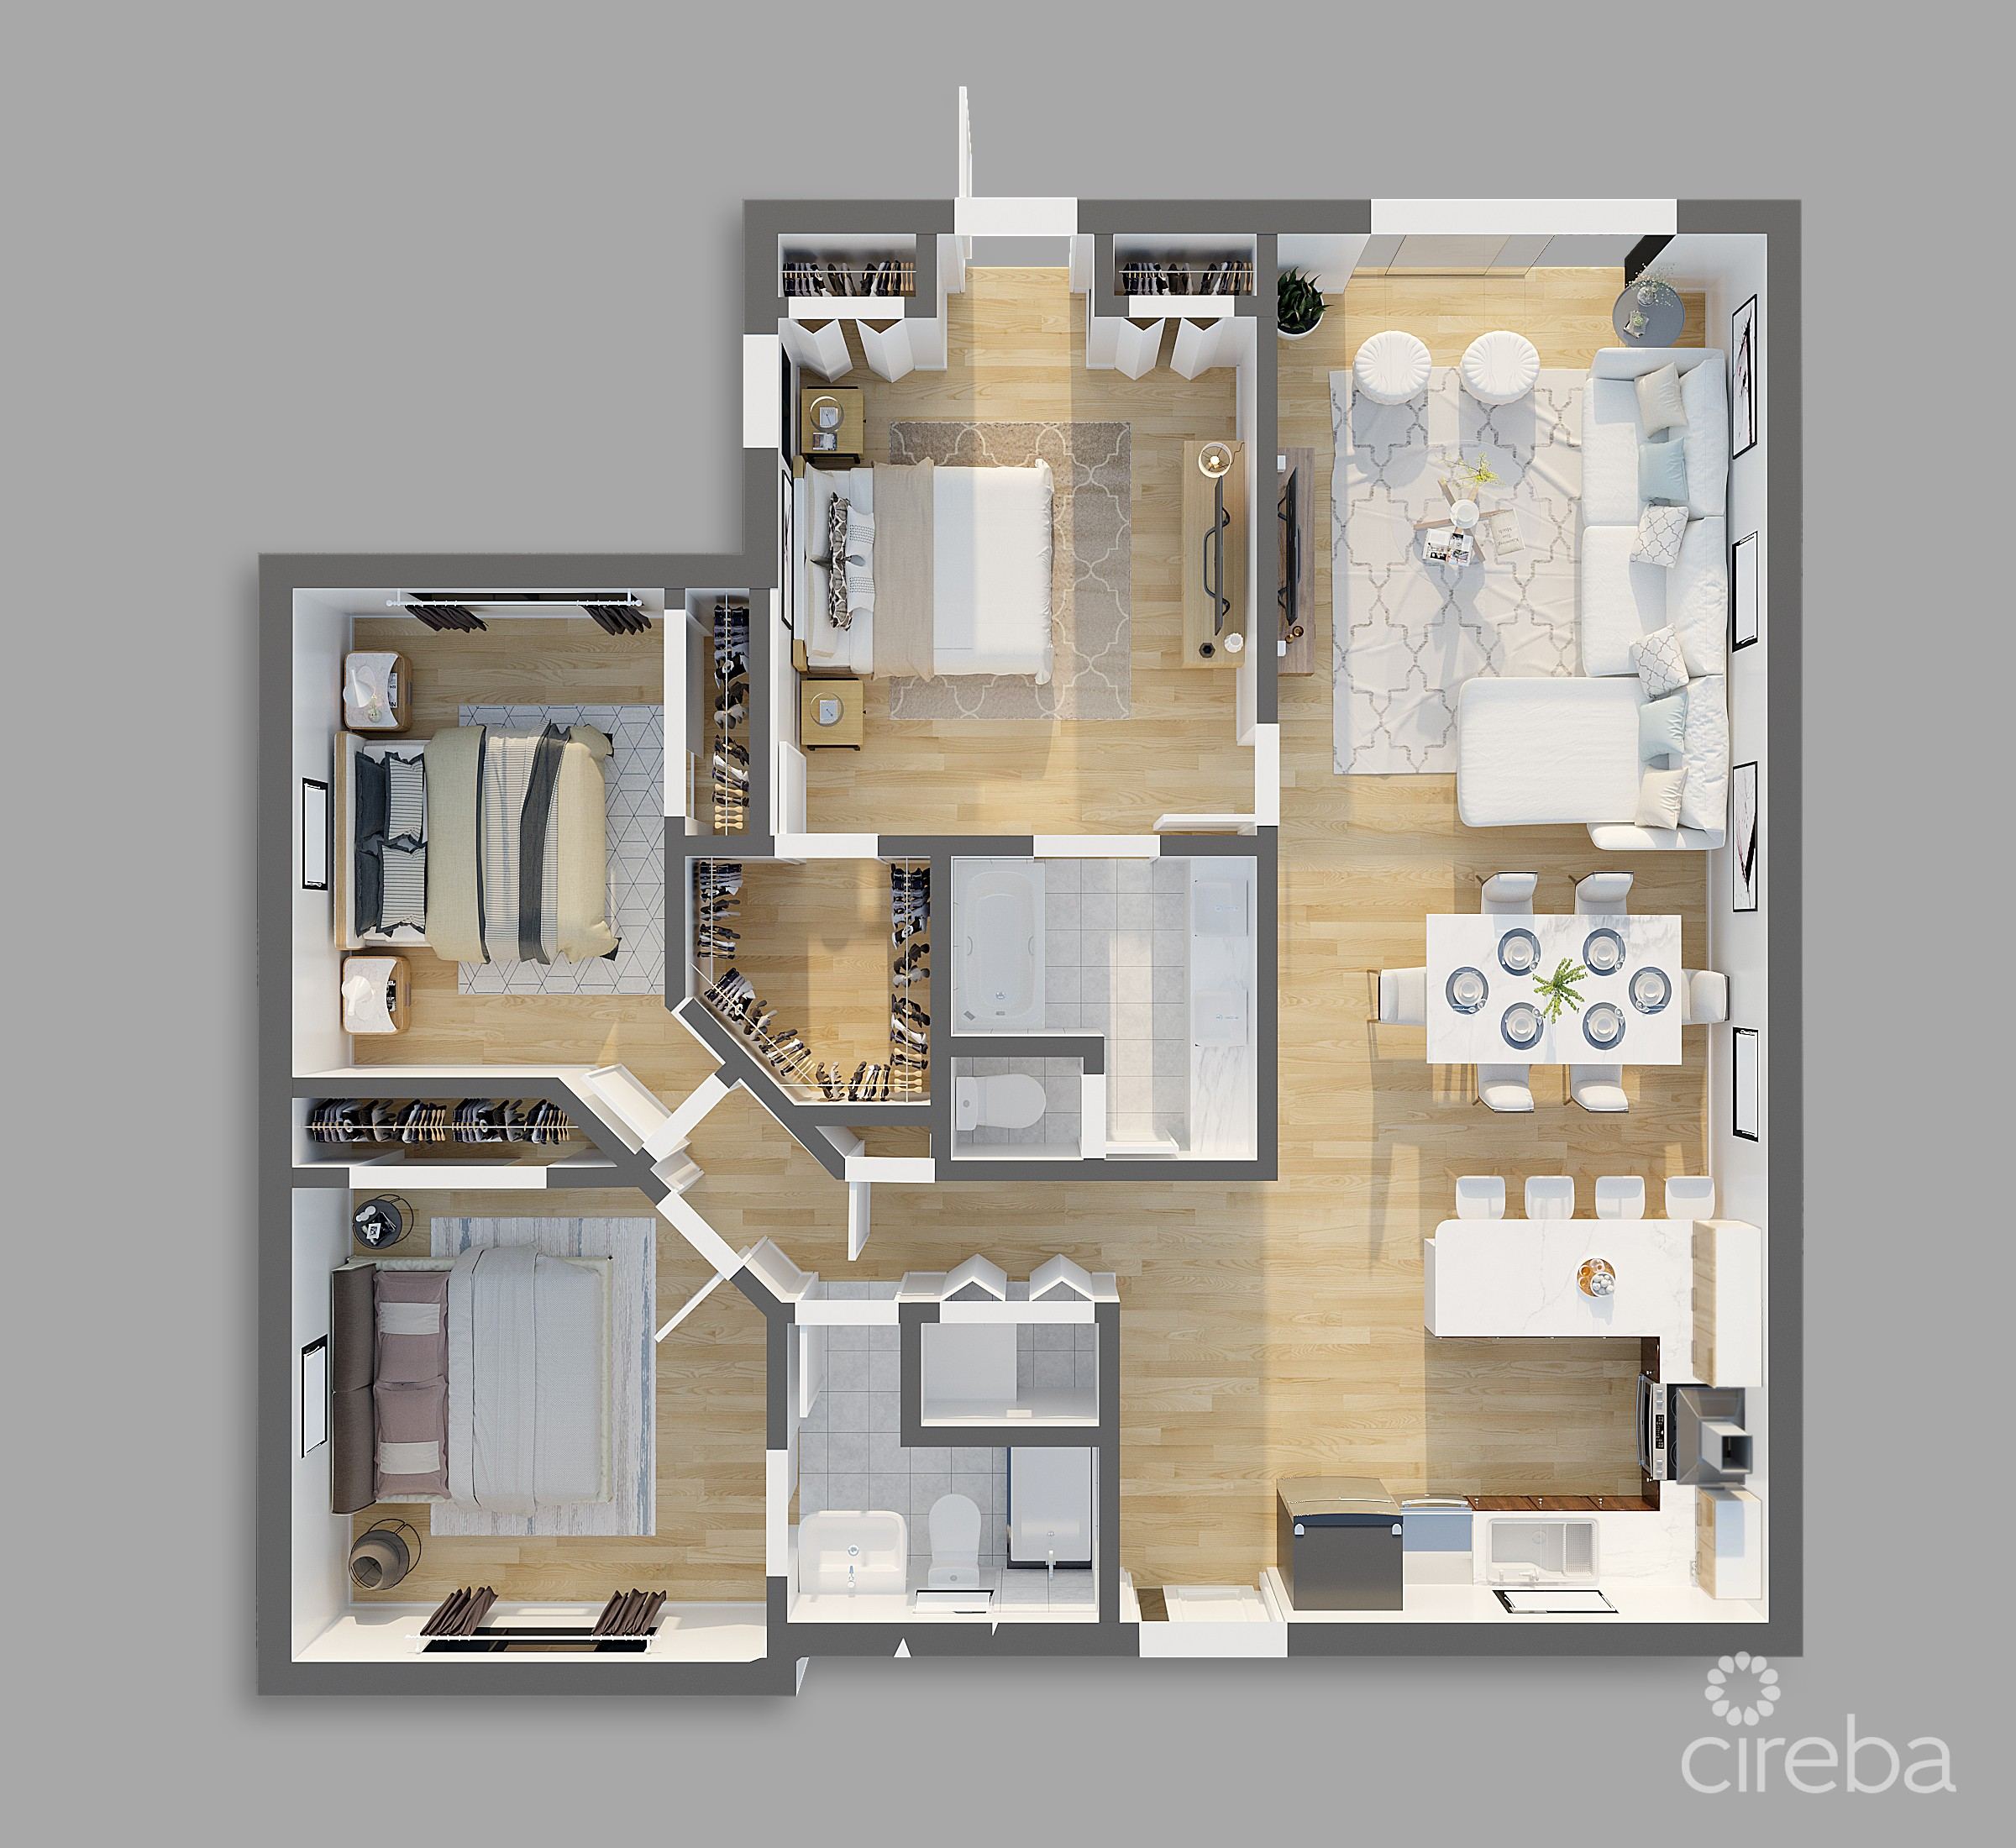 GLORIA MAY DRIVE, NEW 3 BED STAND ALONE HOME